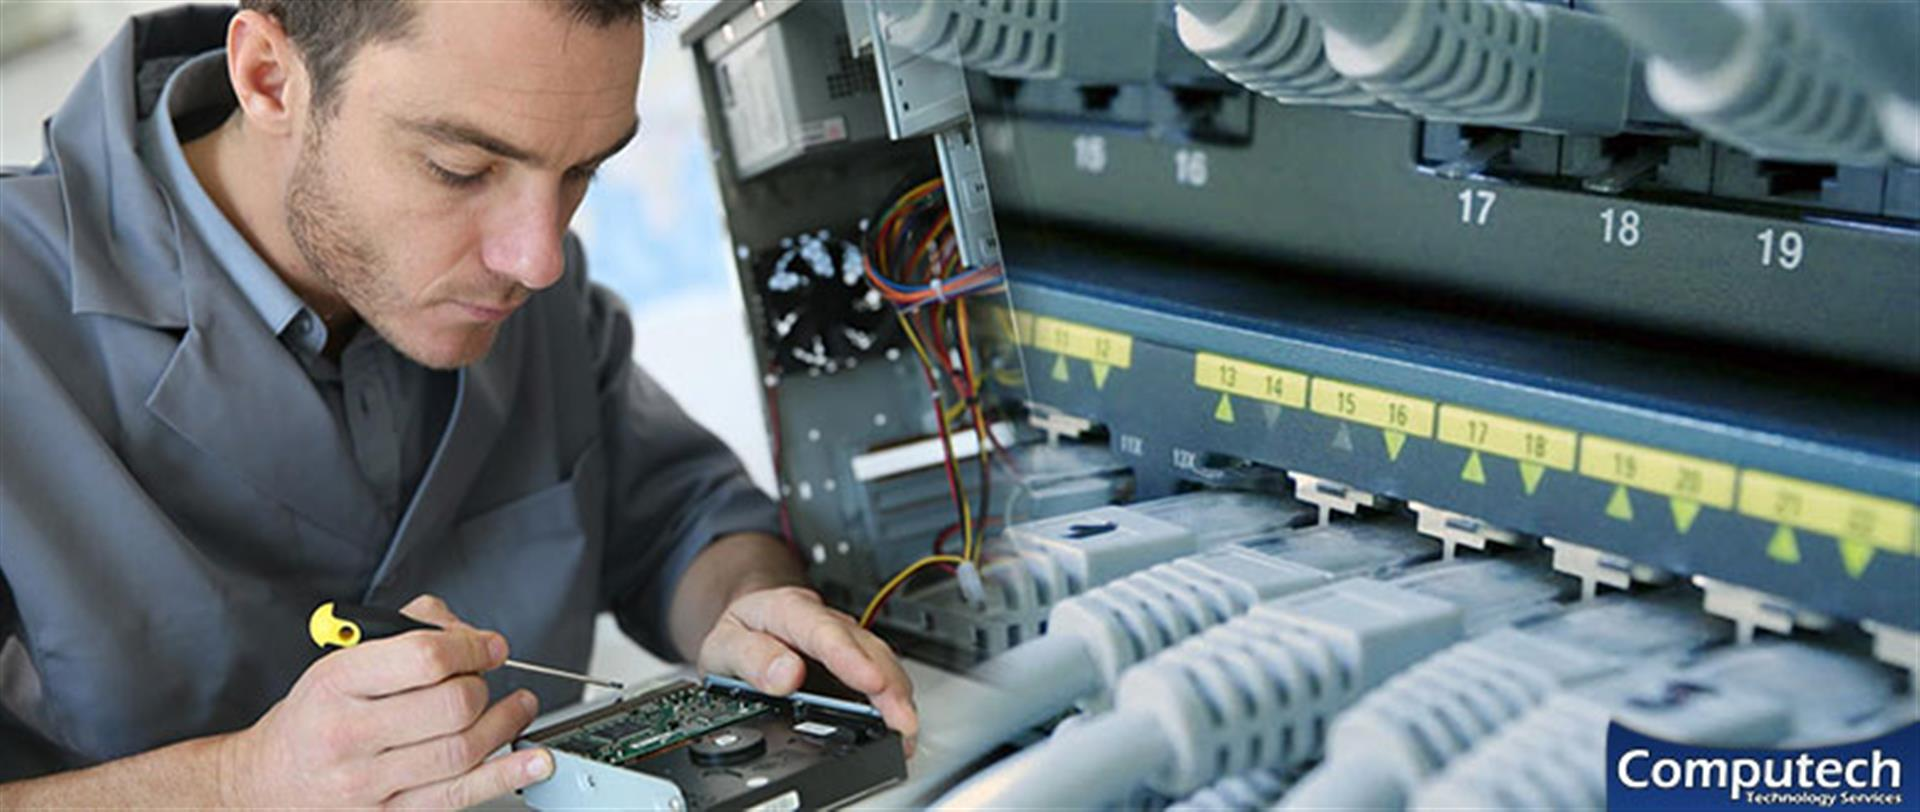 Glendale Arizona On-Site Computer & Printer Repair, Networks, Telecom and Data Cabling Solutions